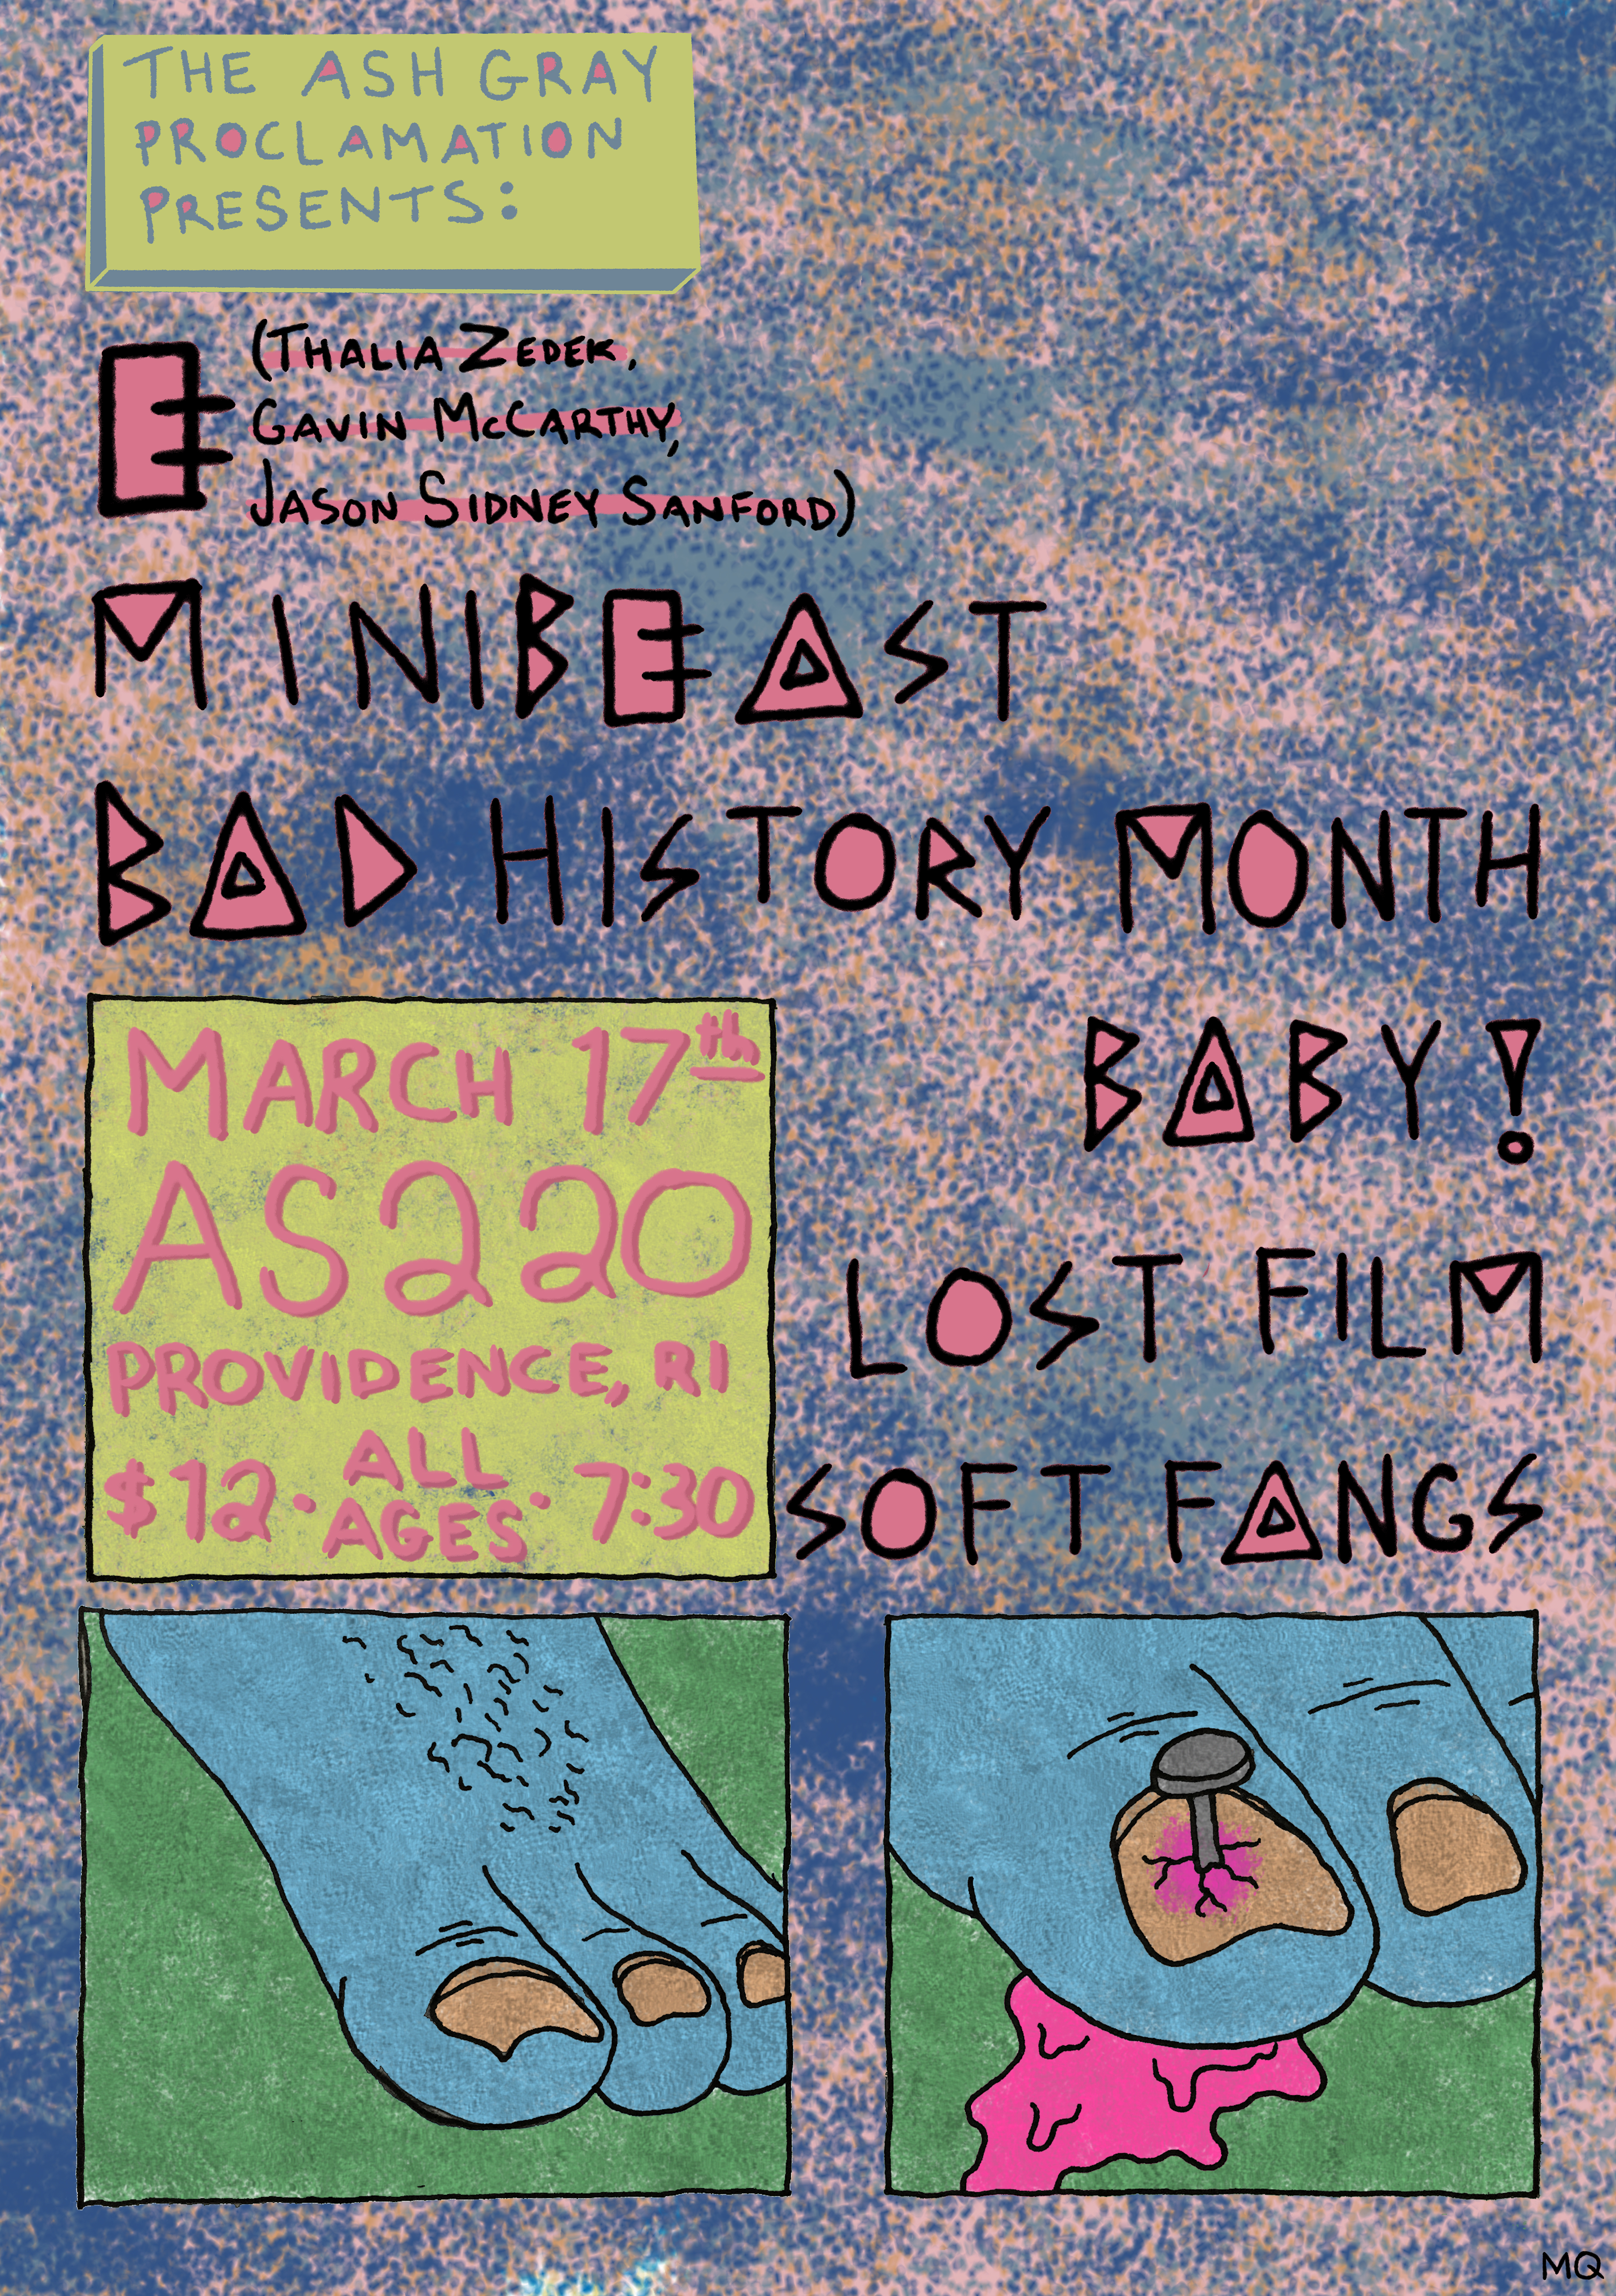 March 17 Flyer